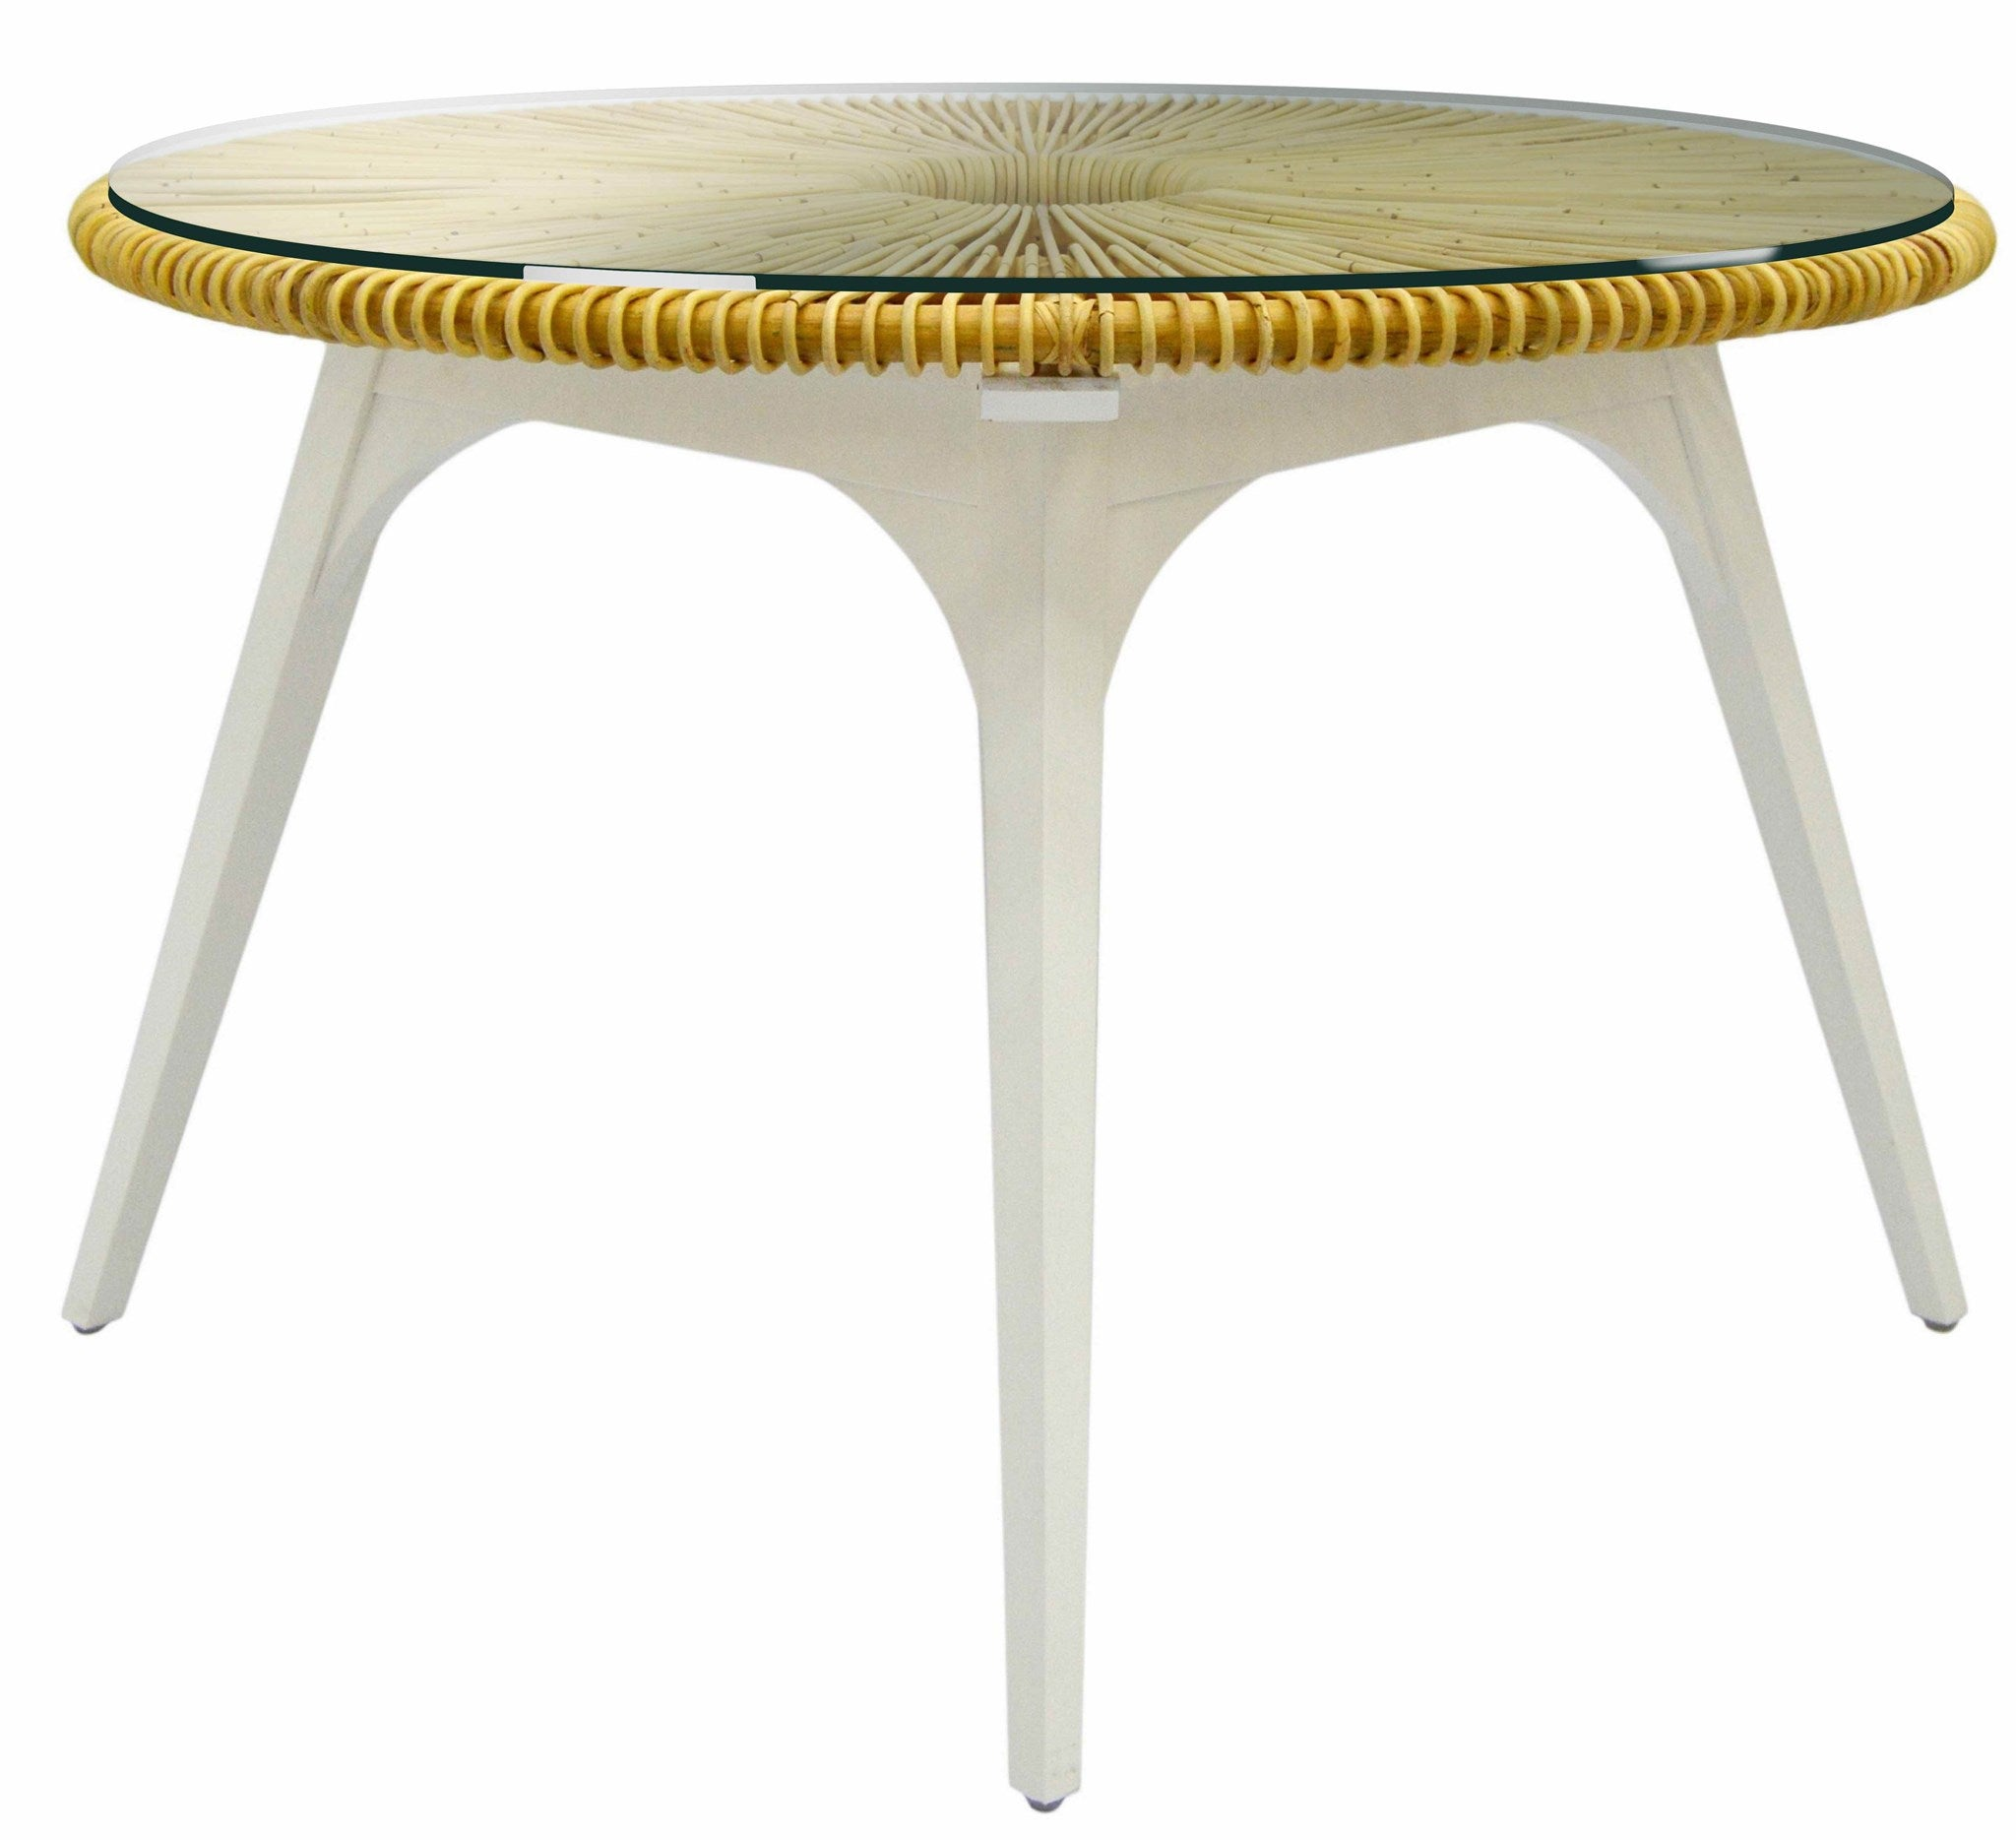 Clemente Round Dining Table - Natural/White by Selamat